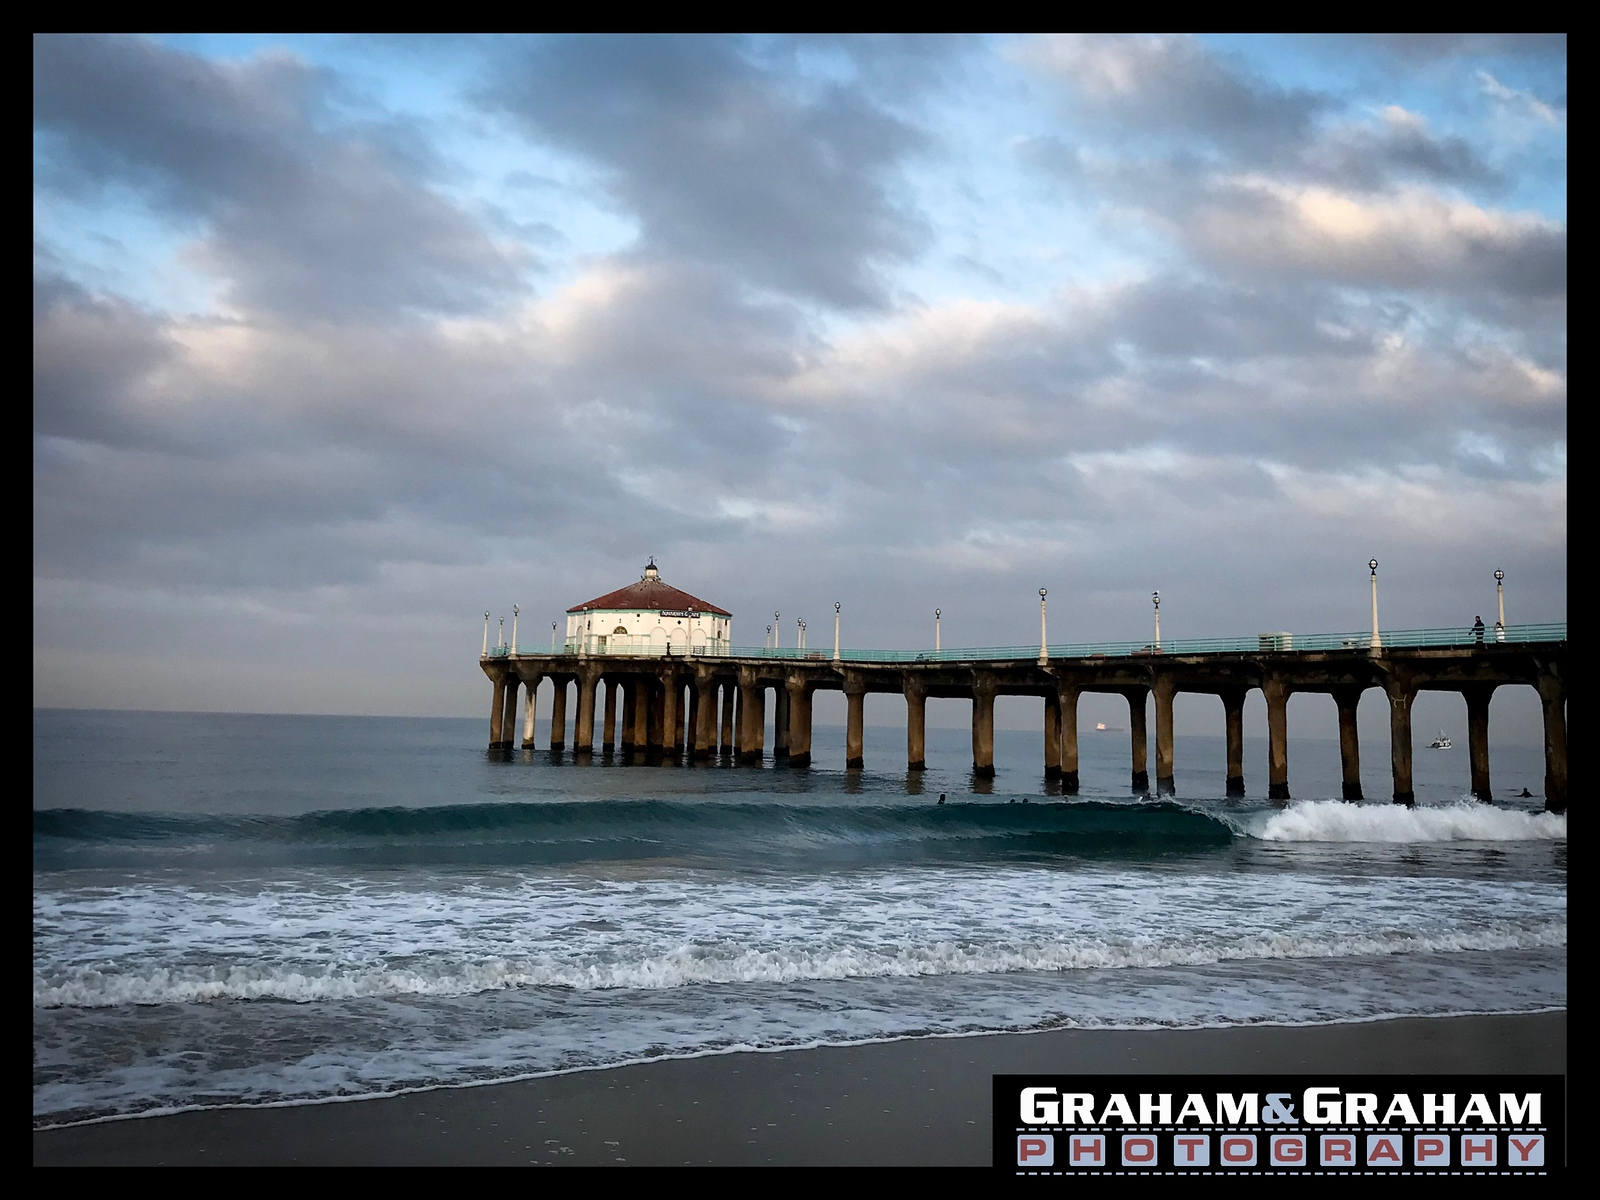 Manhattan Beach photographer